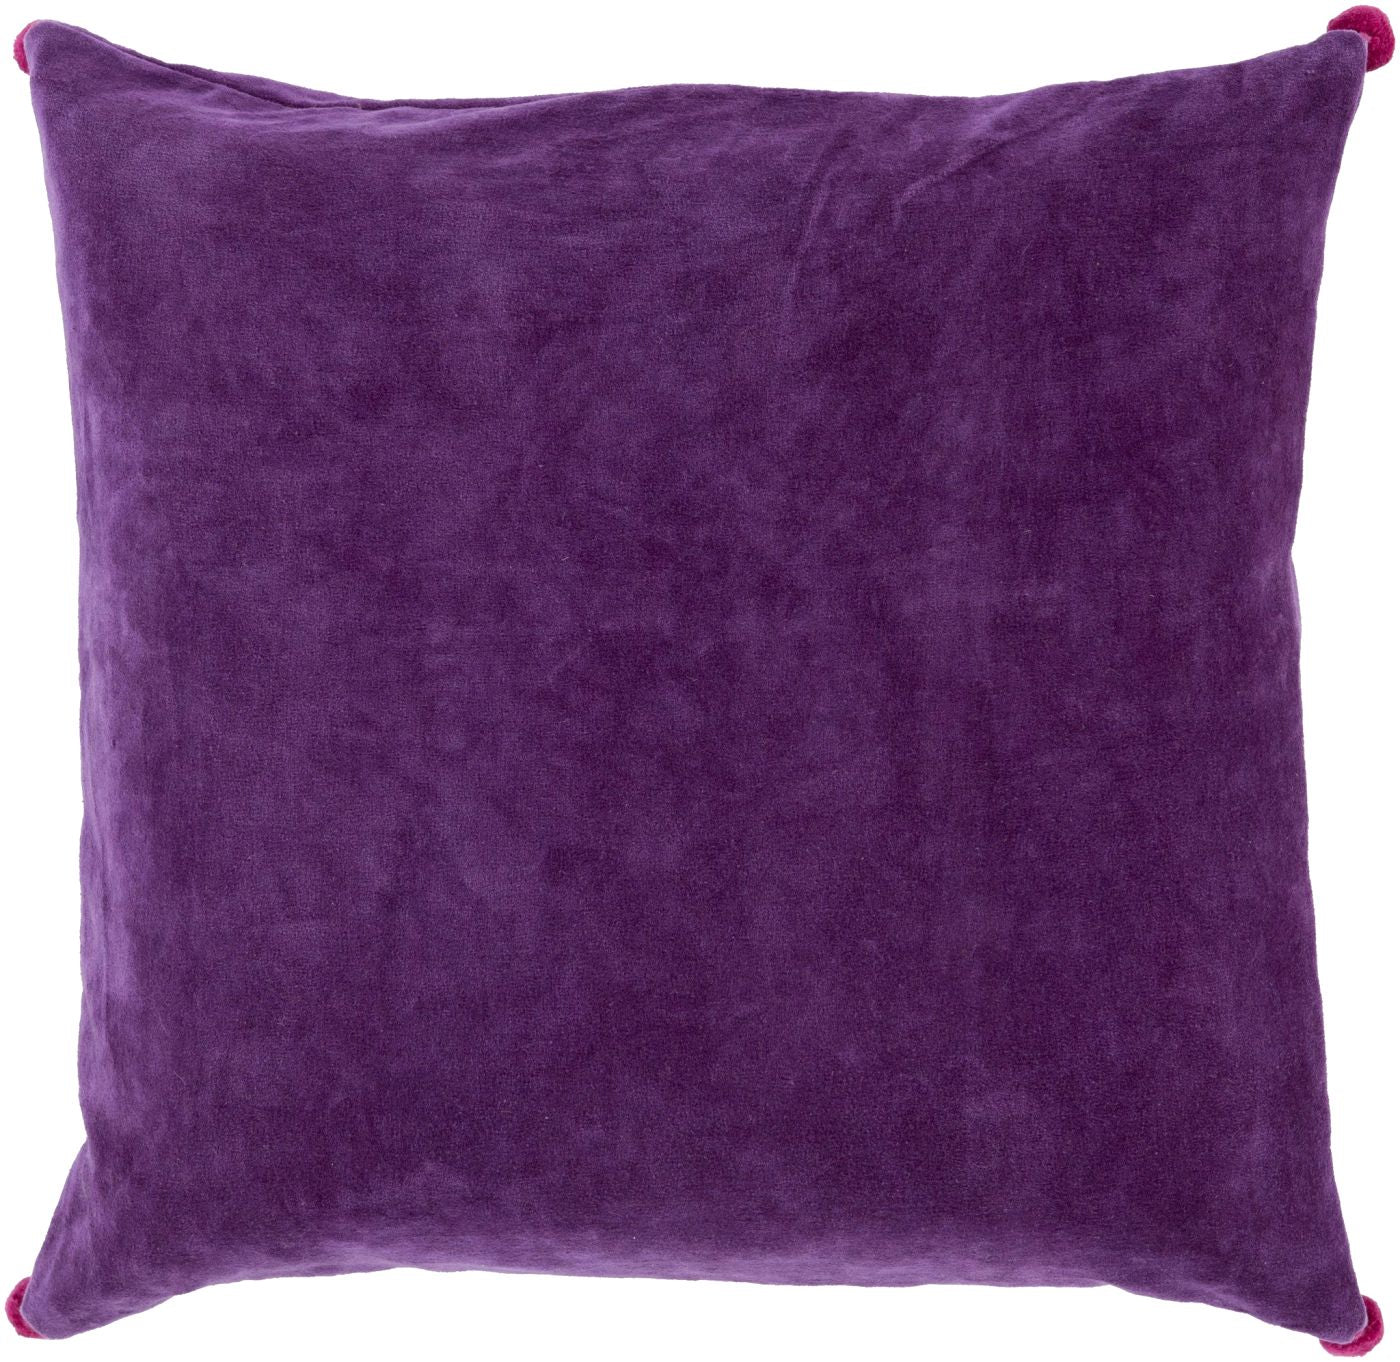 Throw Pillow Warehouse : Surya Velvet Poms Throw Pillow Purple, Pink VP002-1818P. Only $30.00 at Contemporary Furniture ...